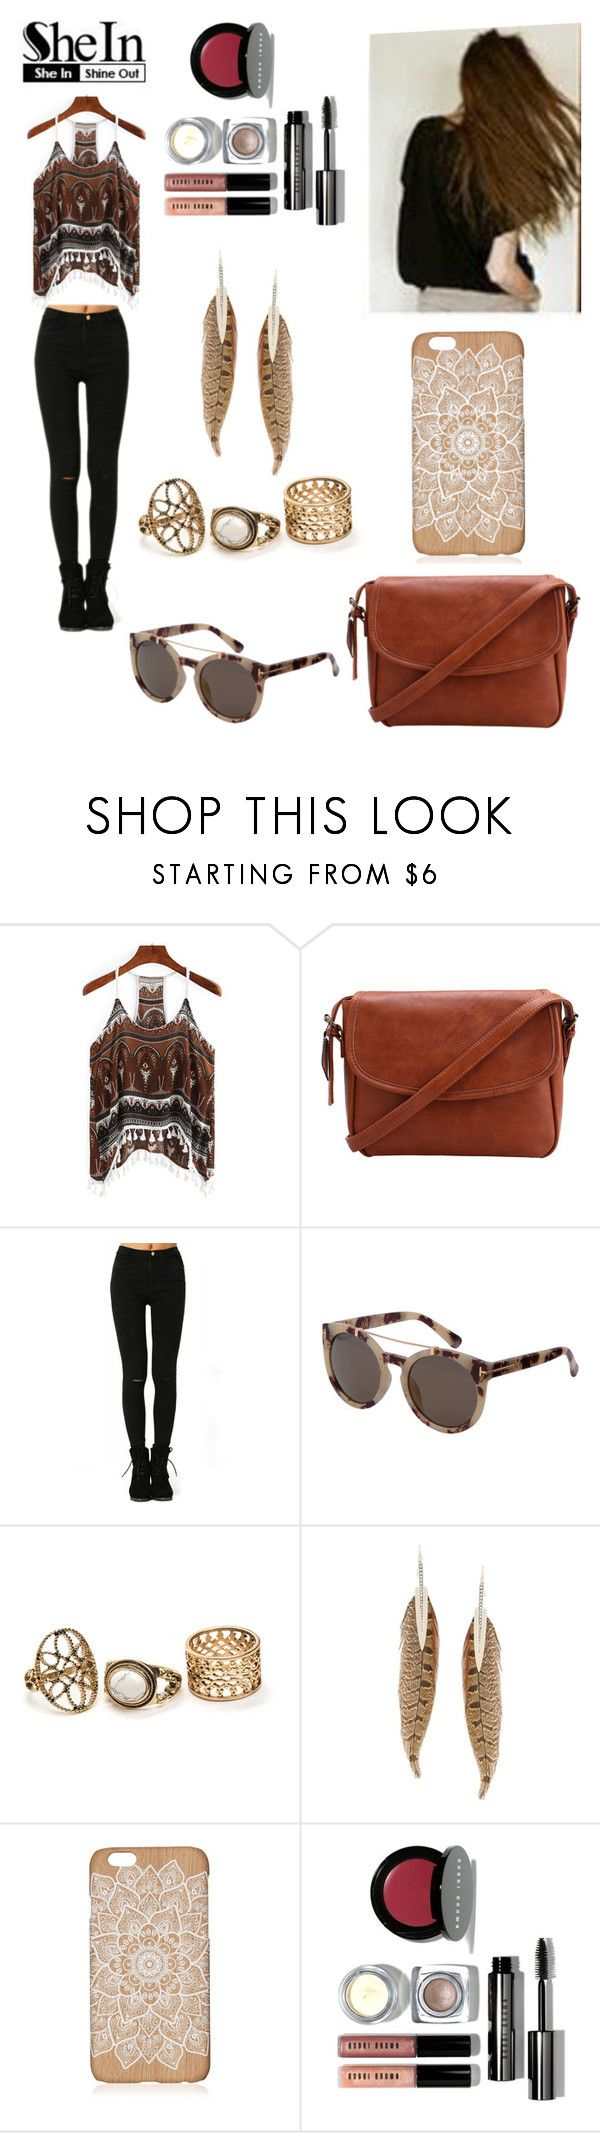 """""""WIN SHEIN $30 COUPON!"""" by ana-silva-386 ❤ liked on Polyvore featuring Roberto Cavalli and Bobbi Brown Cosmetics"""